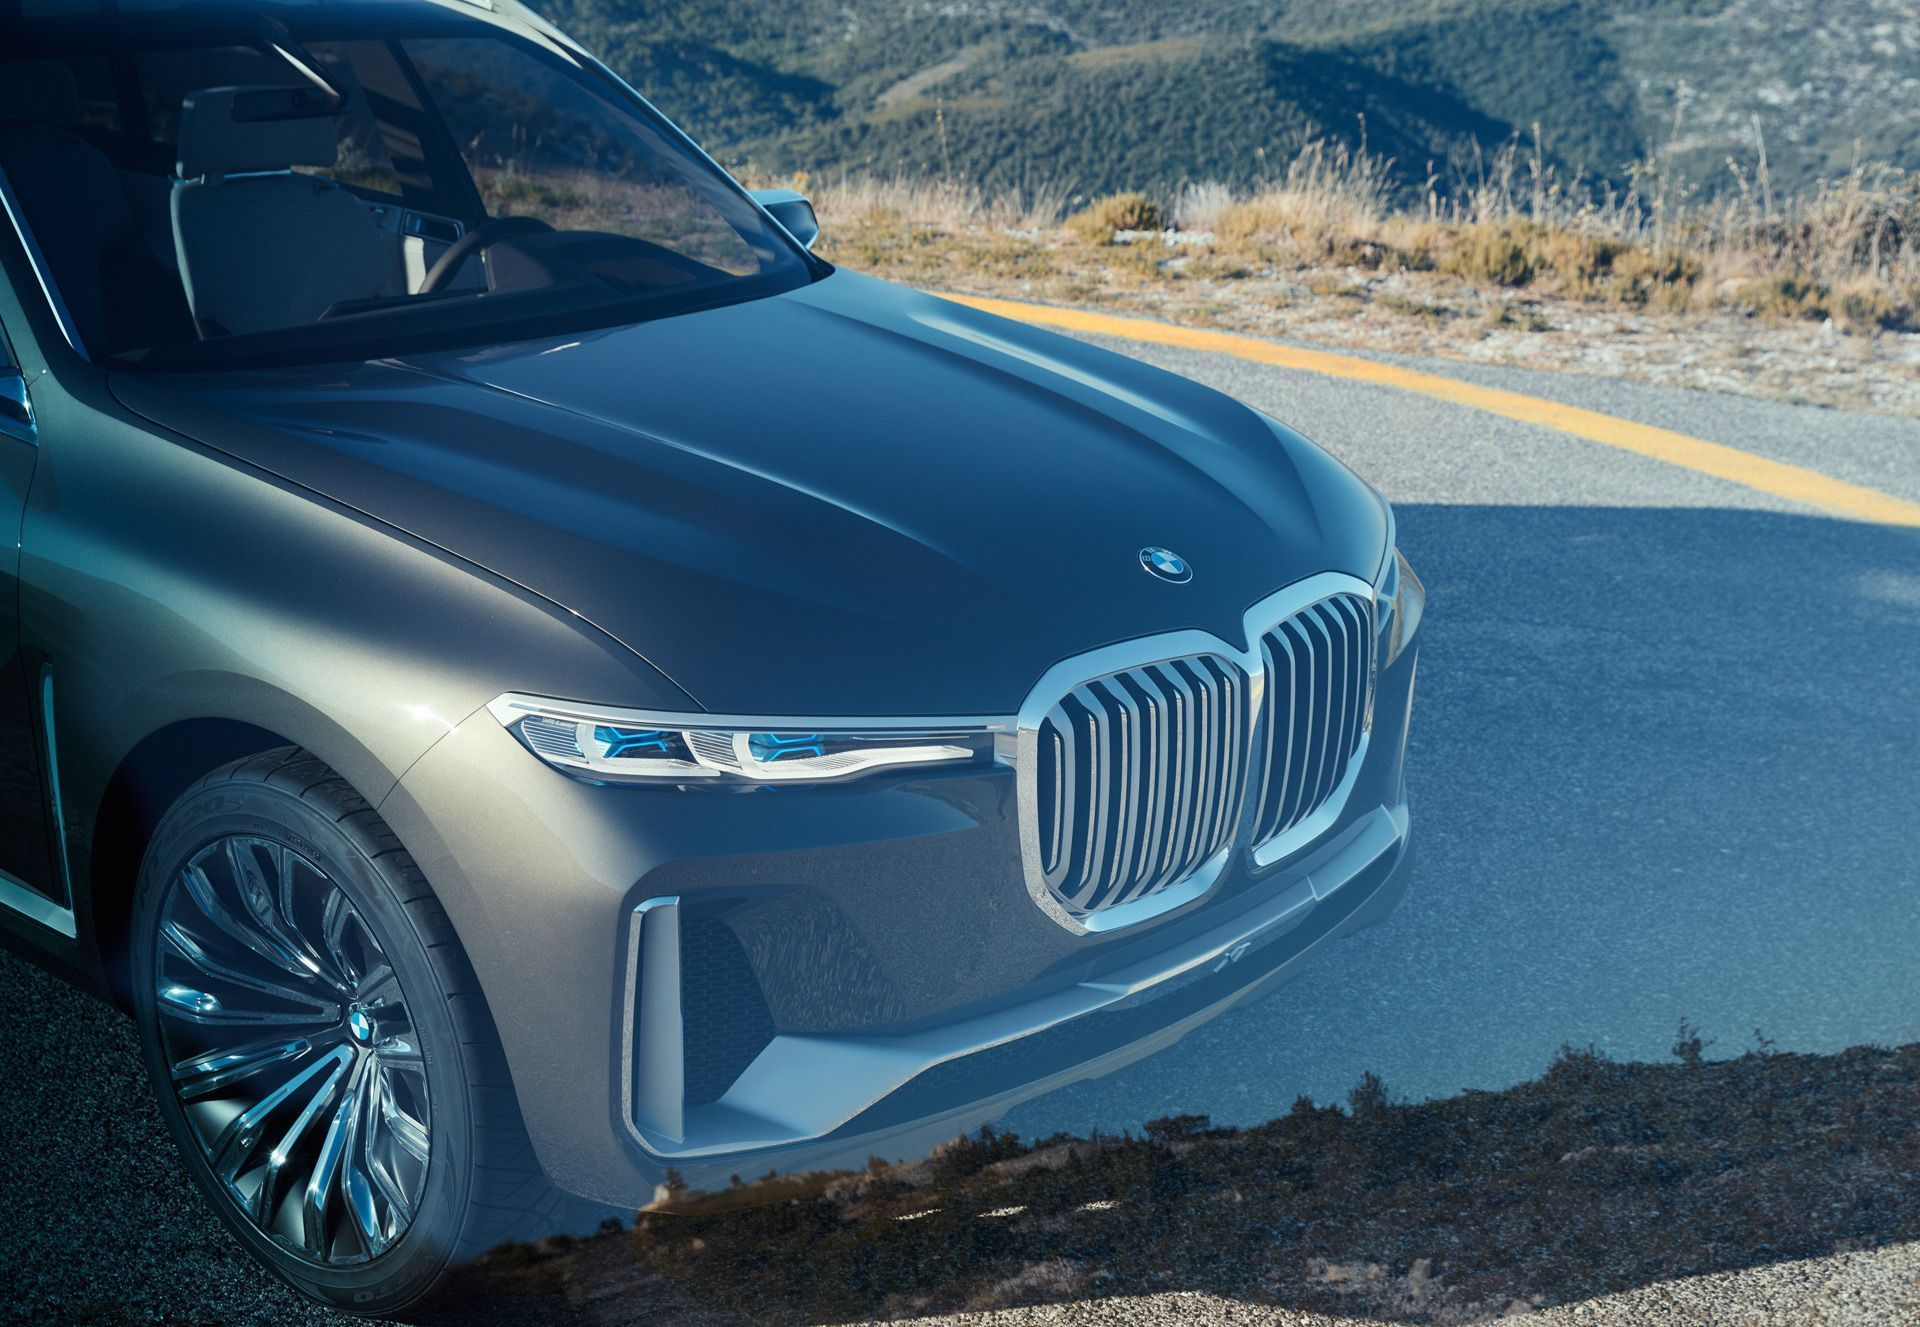 The Upcoming 2020 Bmw X8 Here Are The Full Preview Brand Newcars Com The Latest Information About New Cars Release Date Redesign An Bmw X7 Bmw Concept Bmw